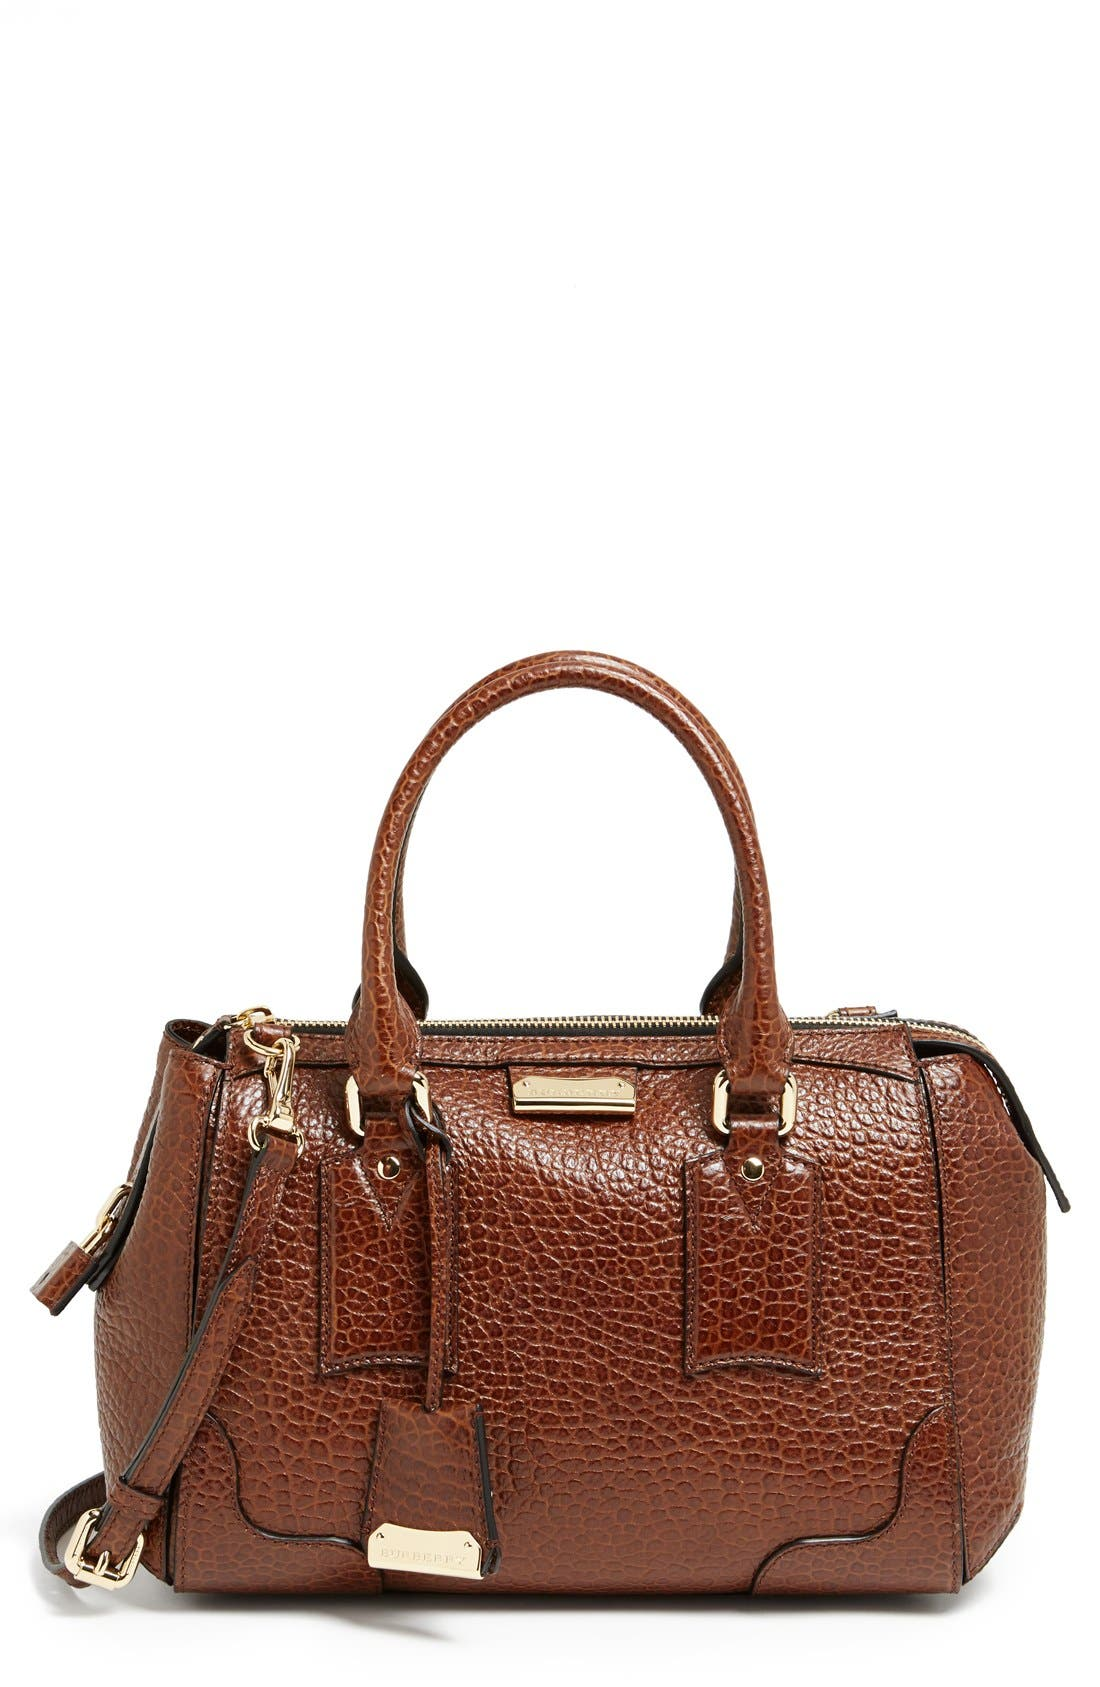 Main Image - Burberry 'Small Gladstone' Leather Satchel